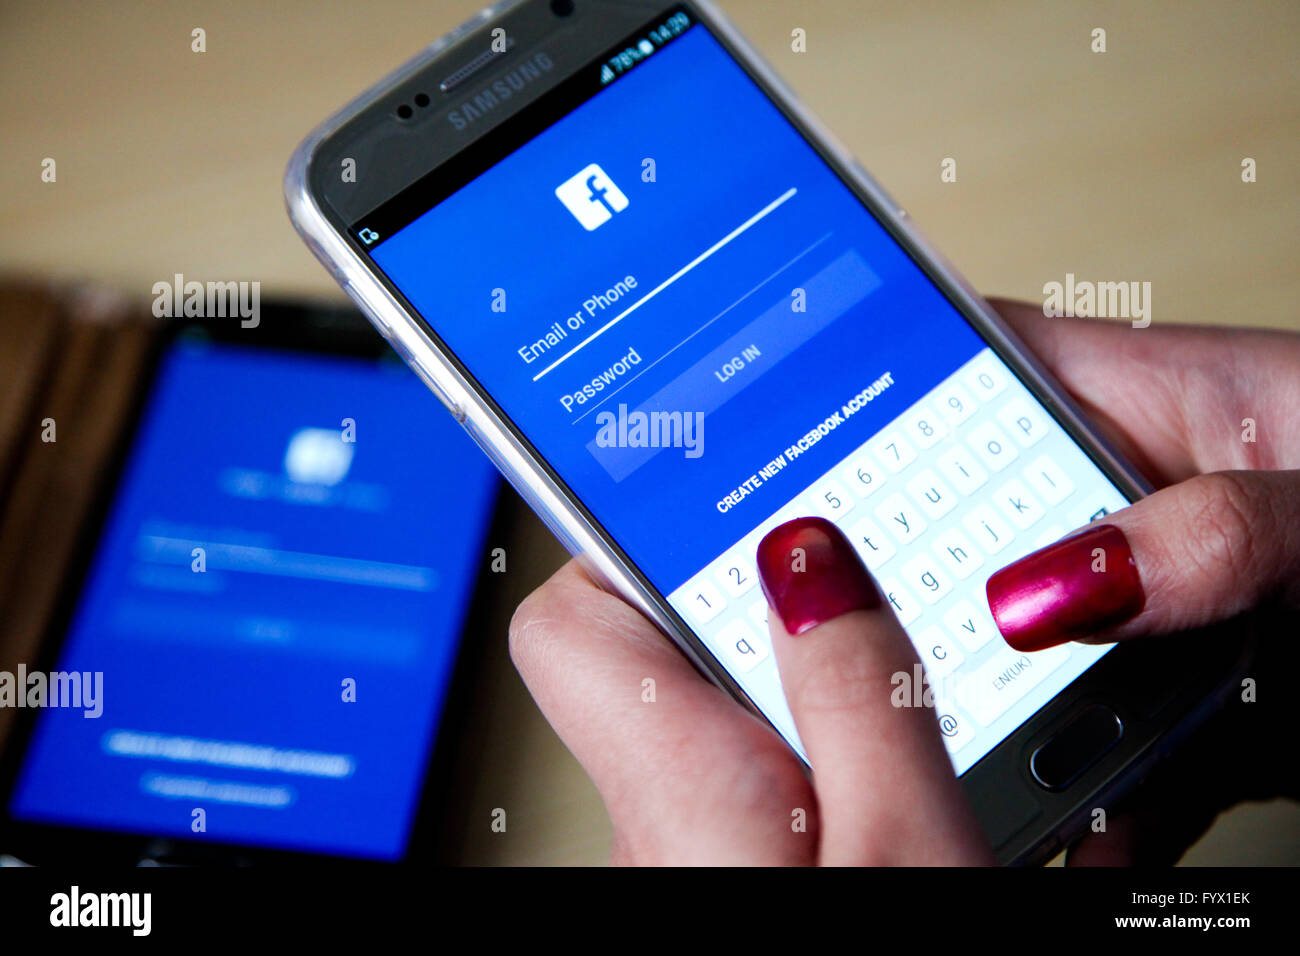 Facebook On Samsung Phone Stock Photos & Facebook On ...